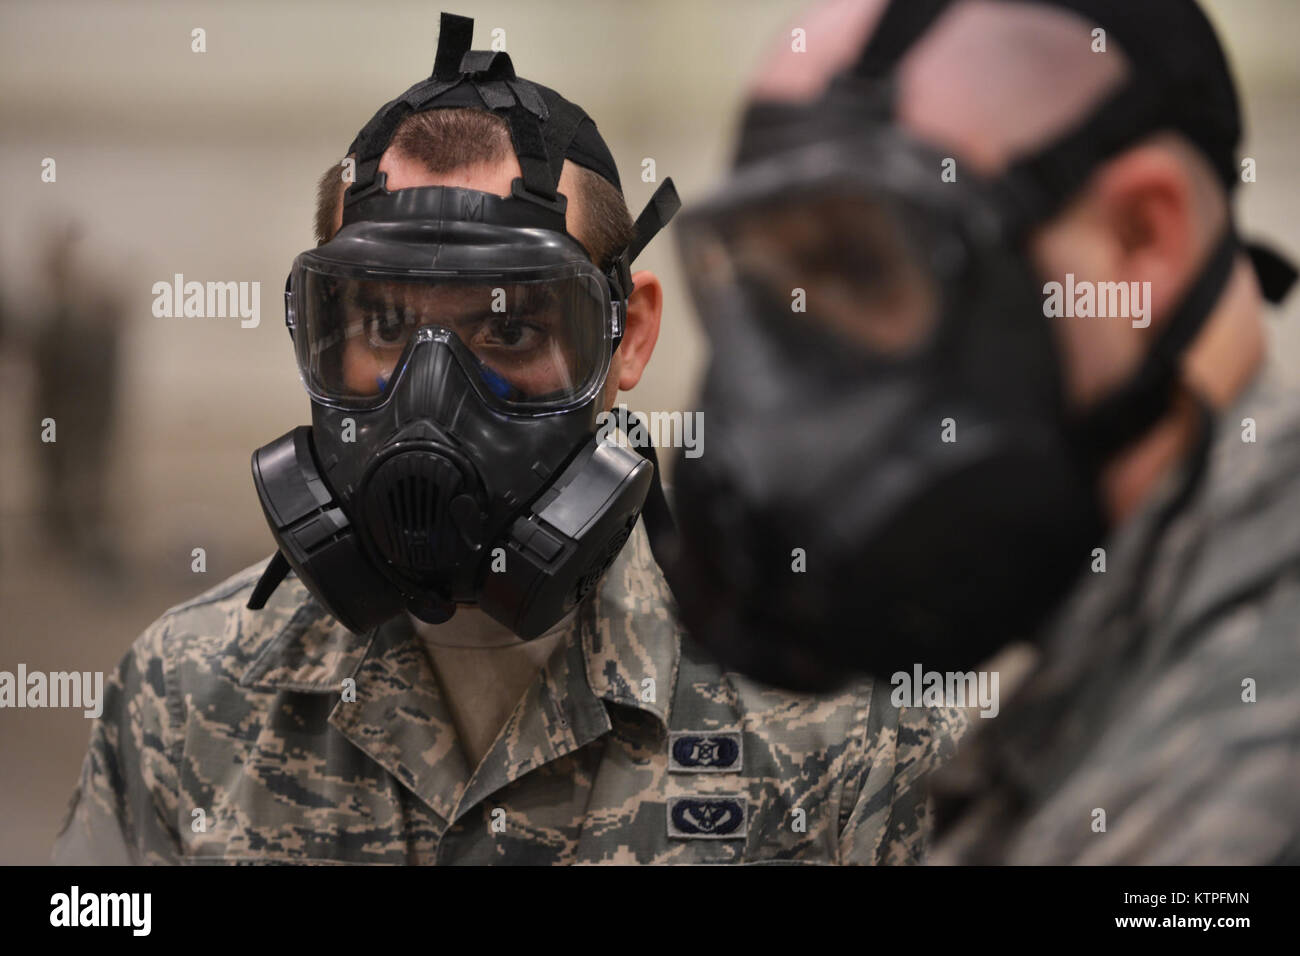 PERRY, GA - Airman First Class Jonathan Allen stands by during a training event at Global Dragon deployment for Stock Photo